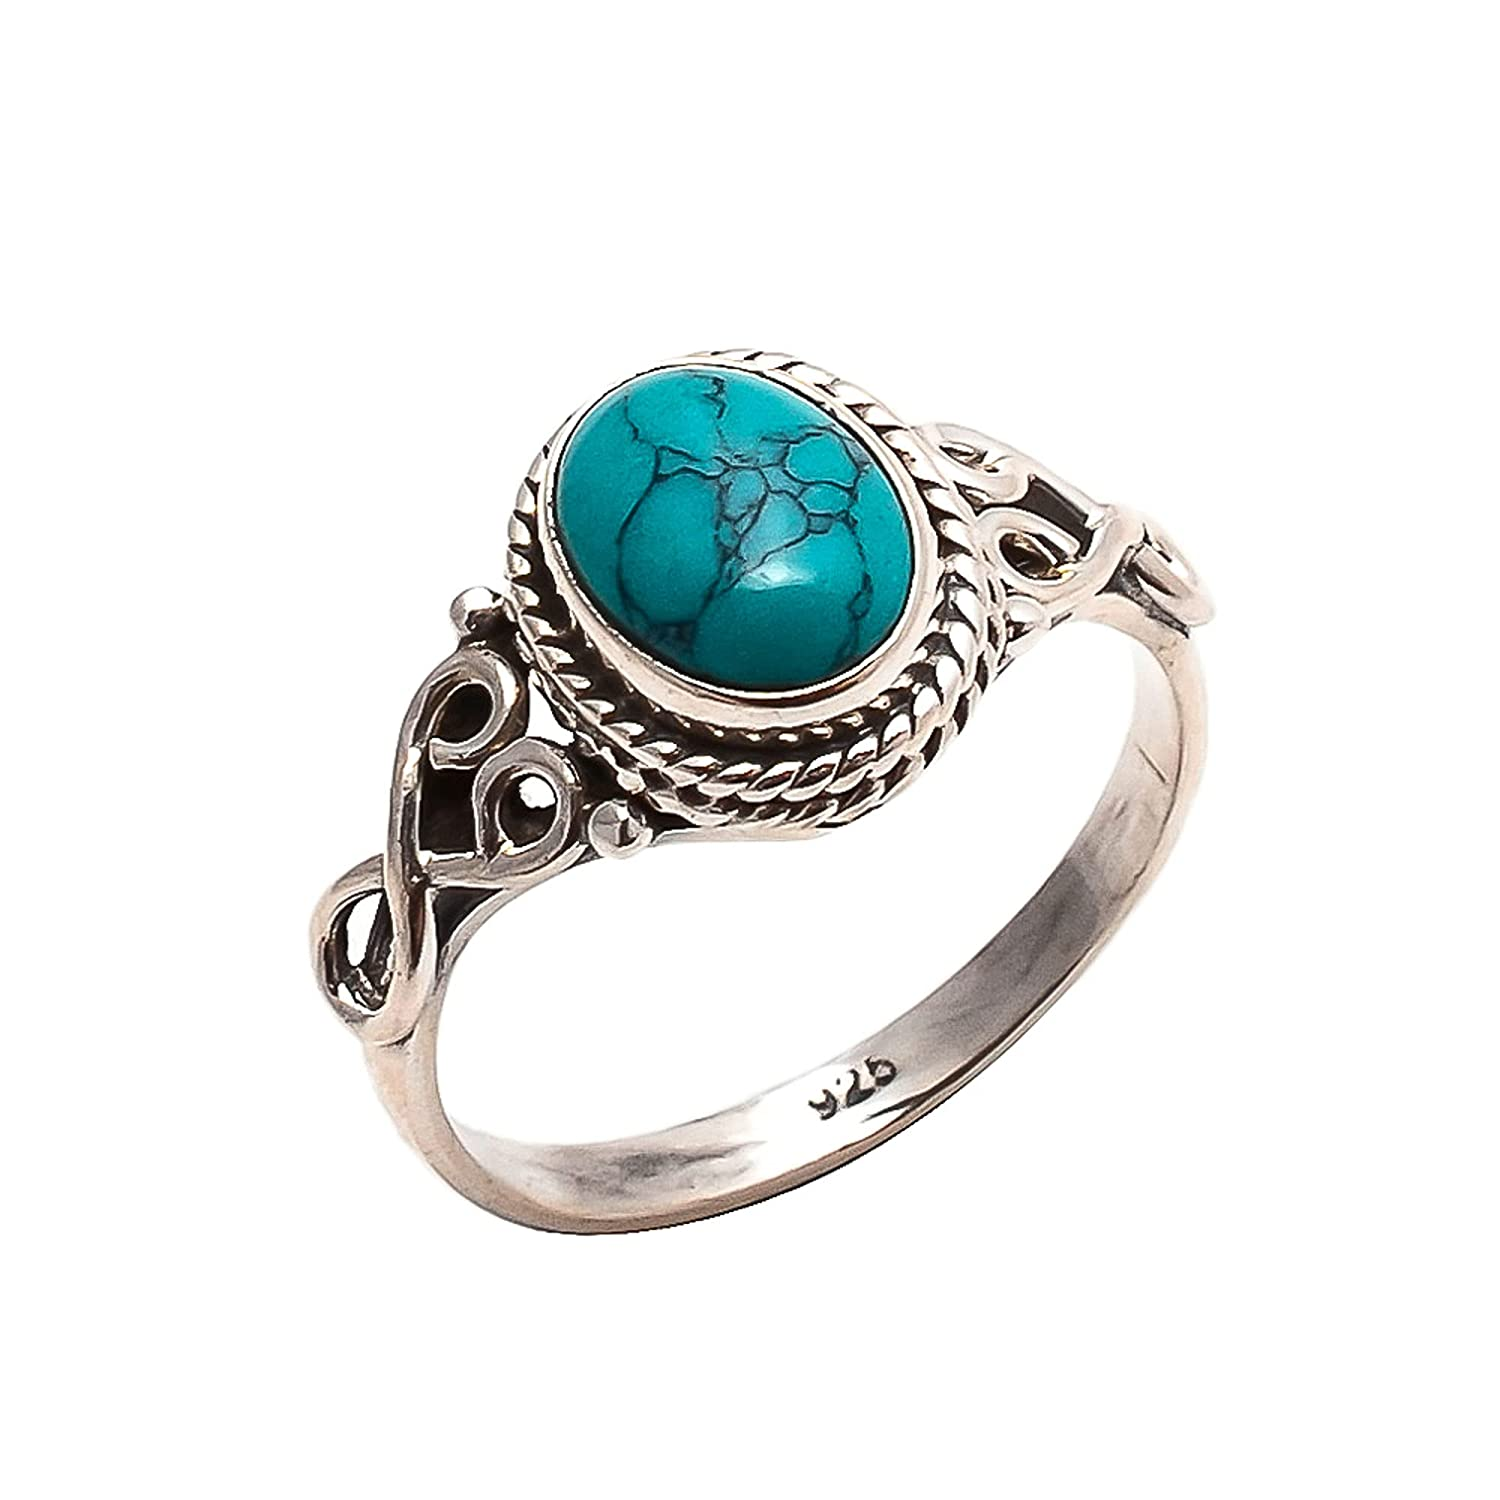 Turquoise Ring 925 Lowest price challenge Sterling Silver Statement Women For Max 86% OFF Si -